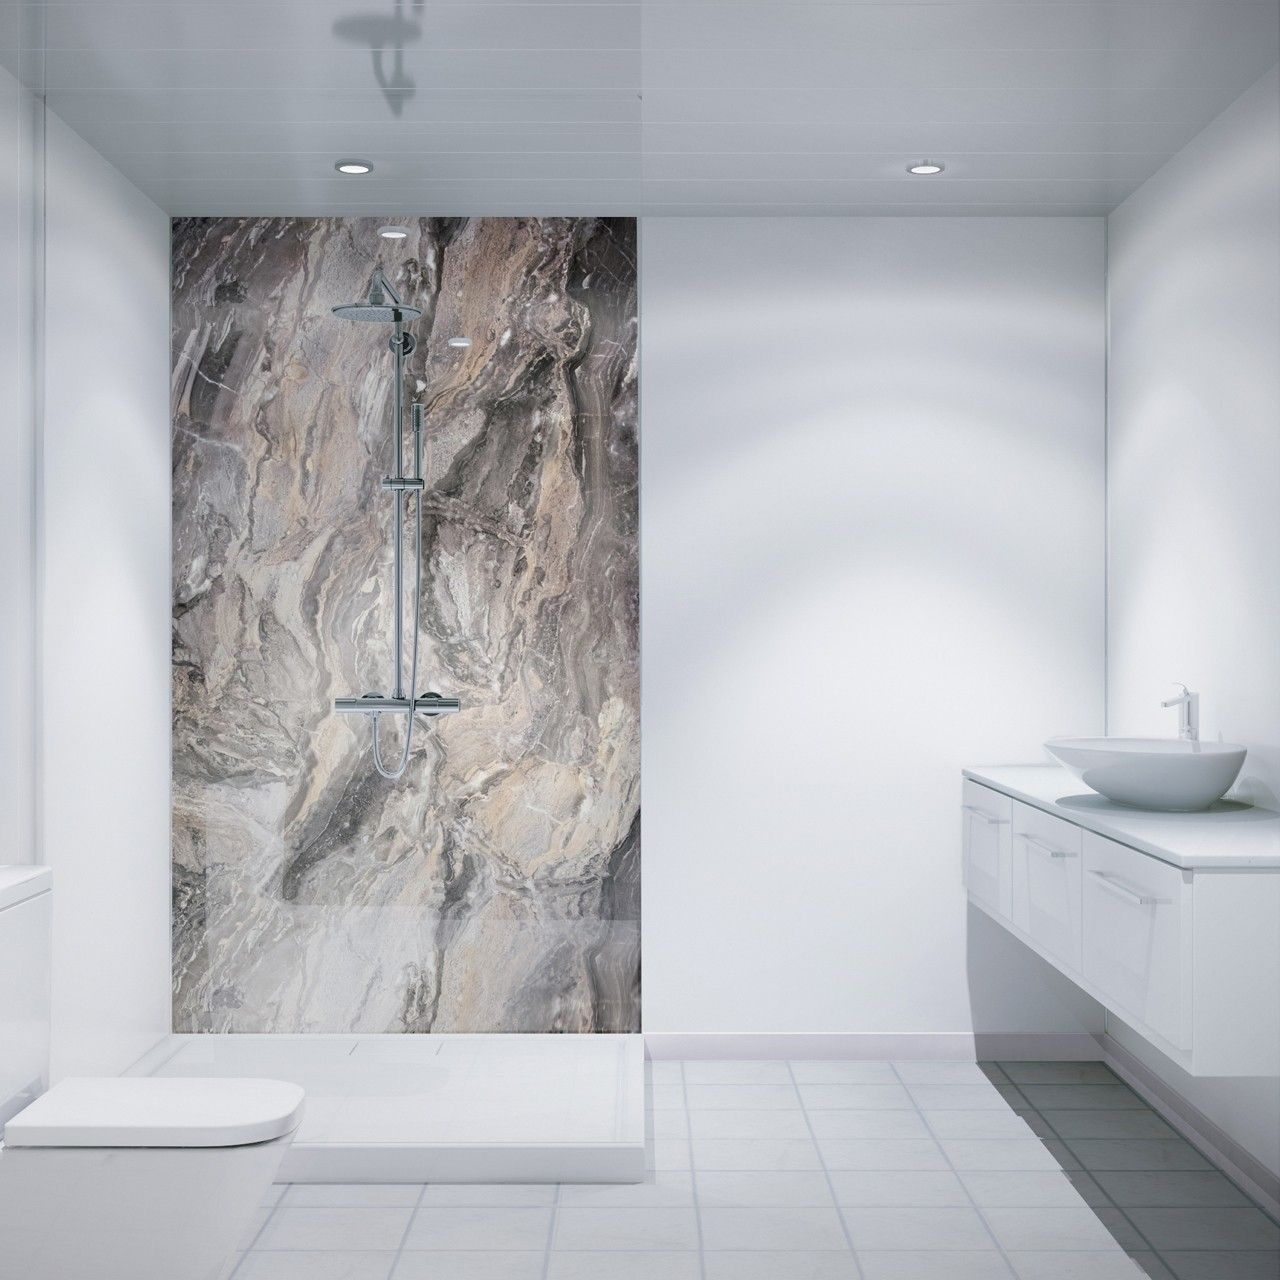 Waterproof wall panels are a great option for walk in showers; stylish,  waterproof and easy to clean? What more could you ask for?